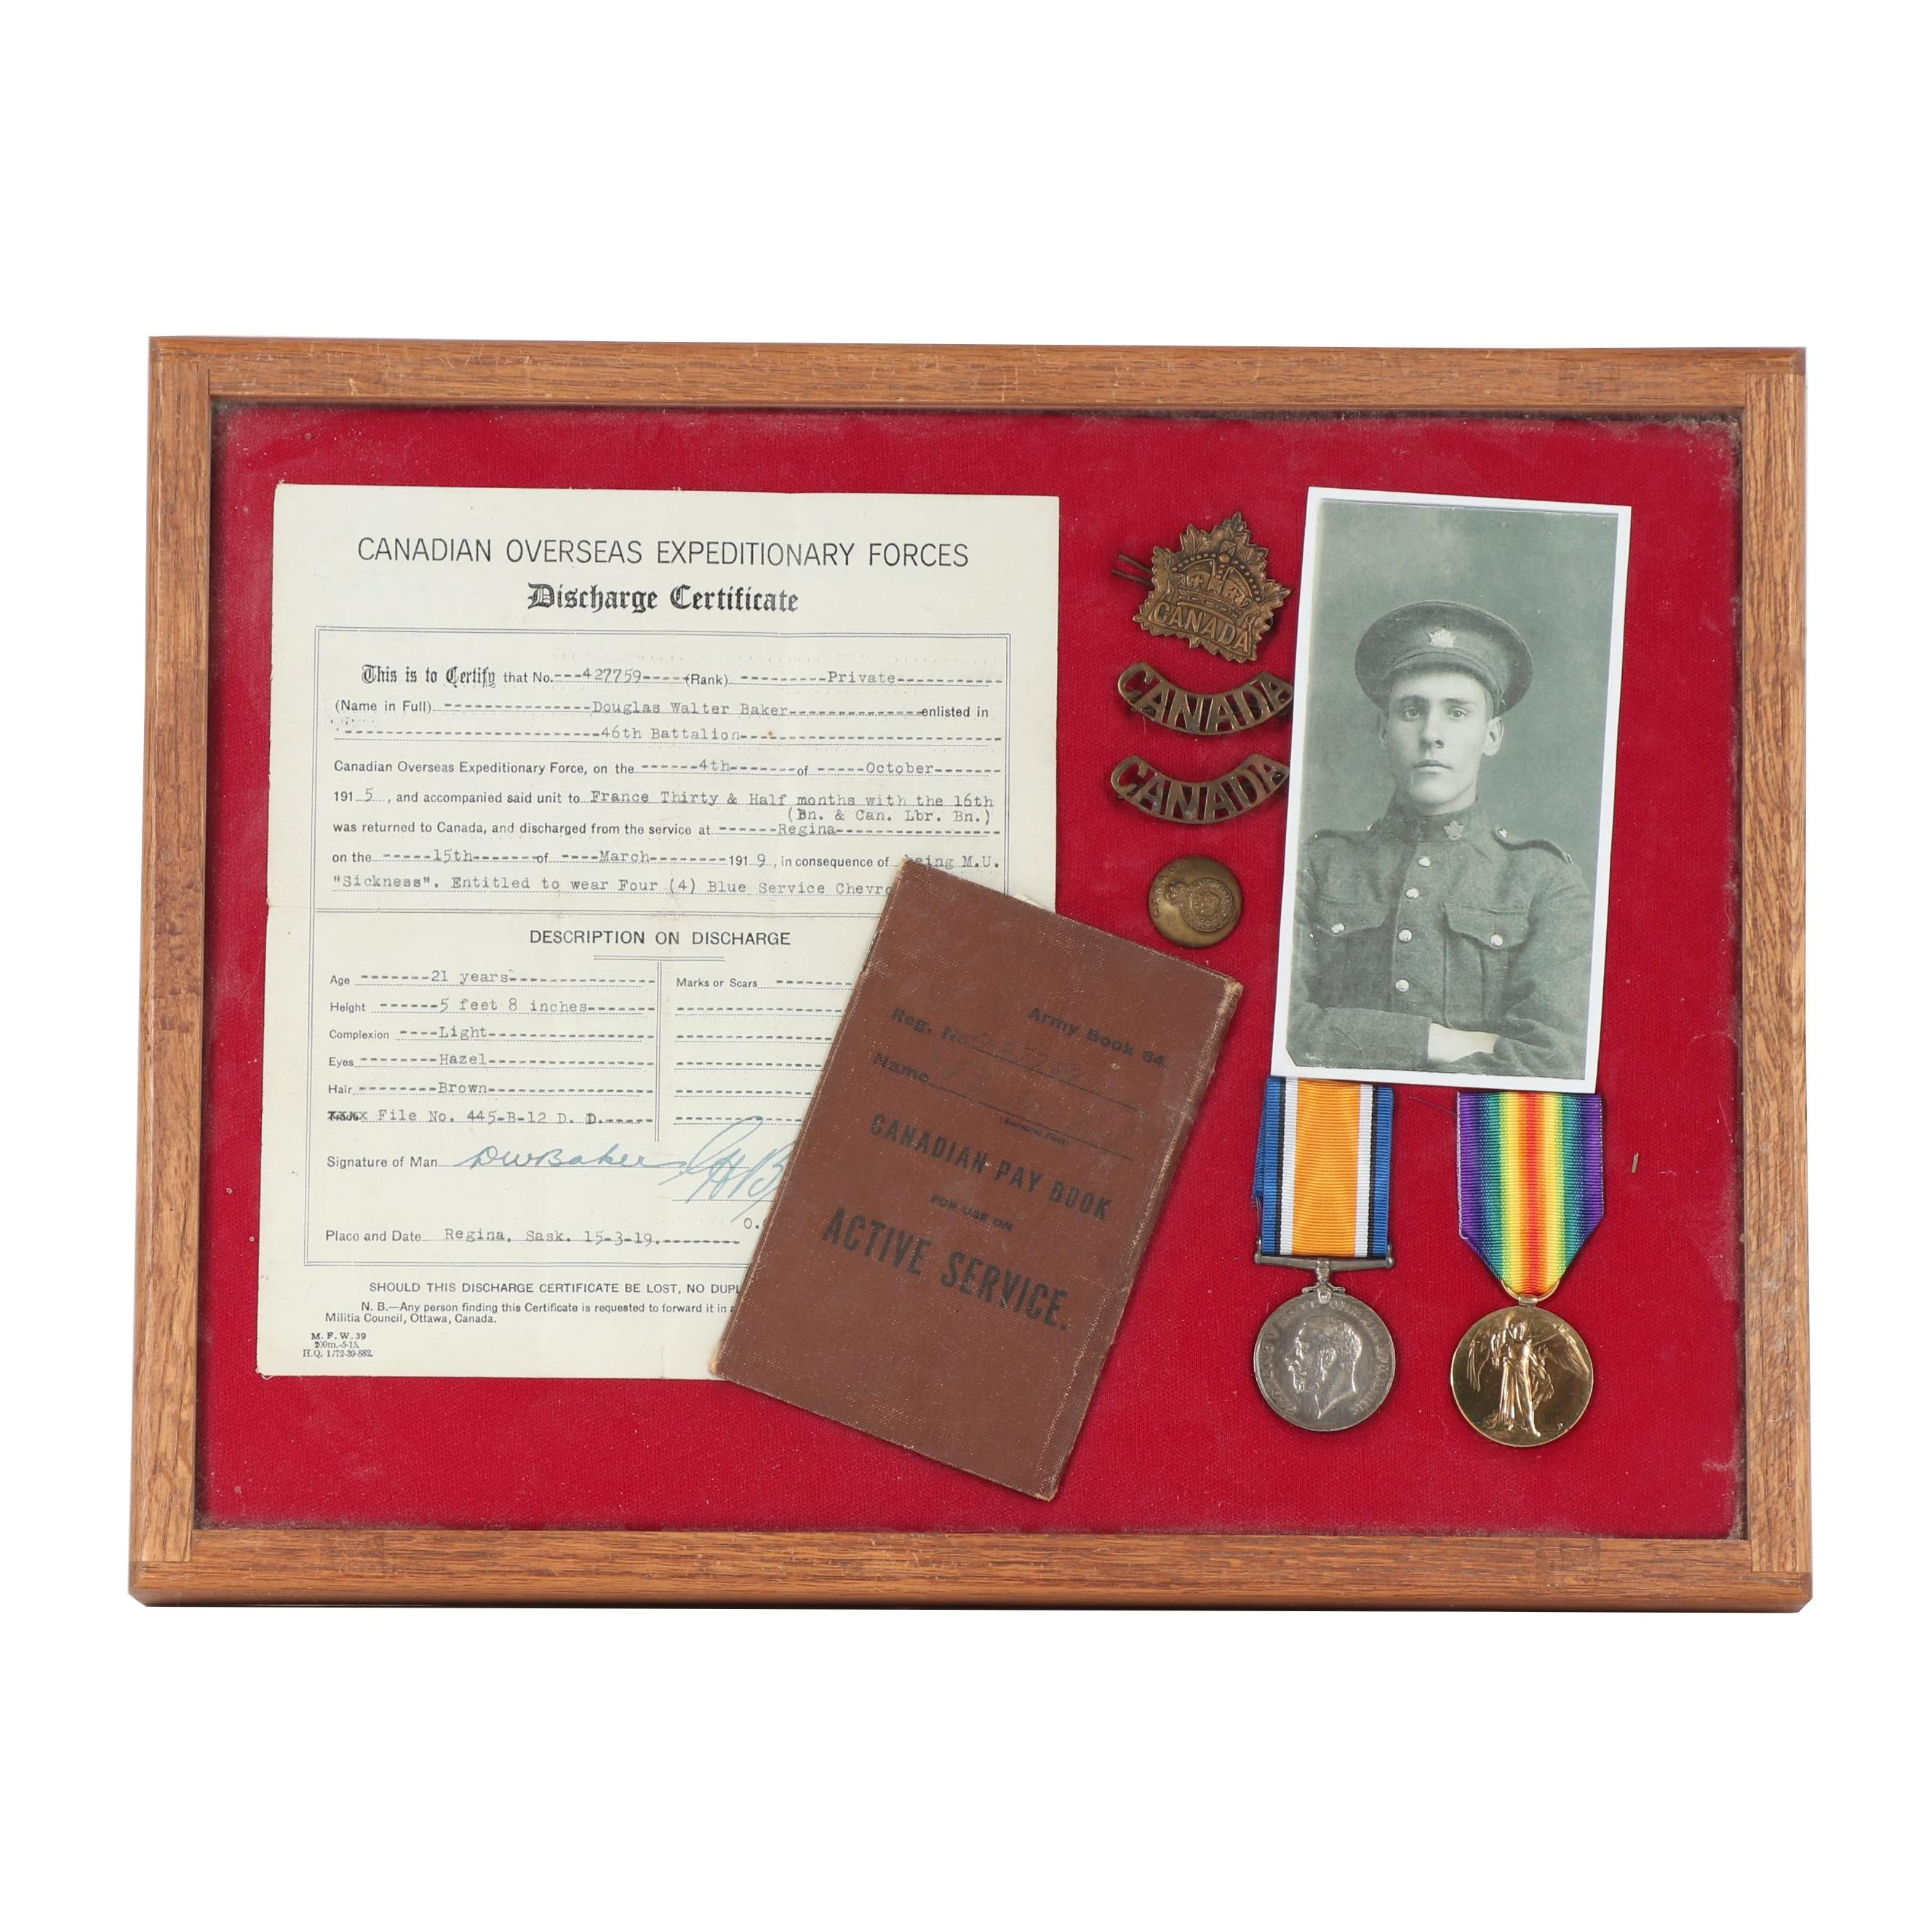 WWI Era Canadian Expeditionary Force Discharge Papers with Medals and Insignia